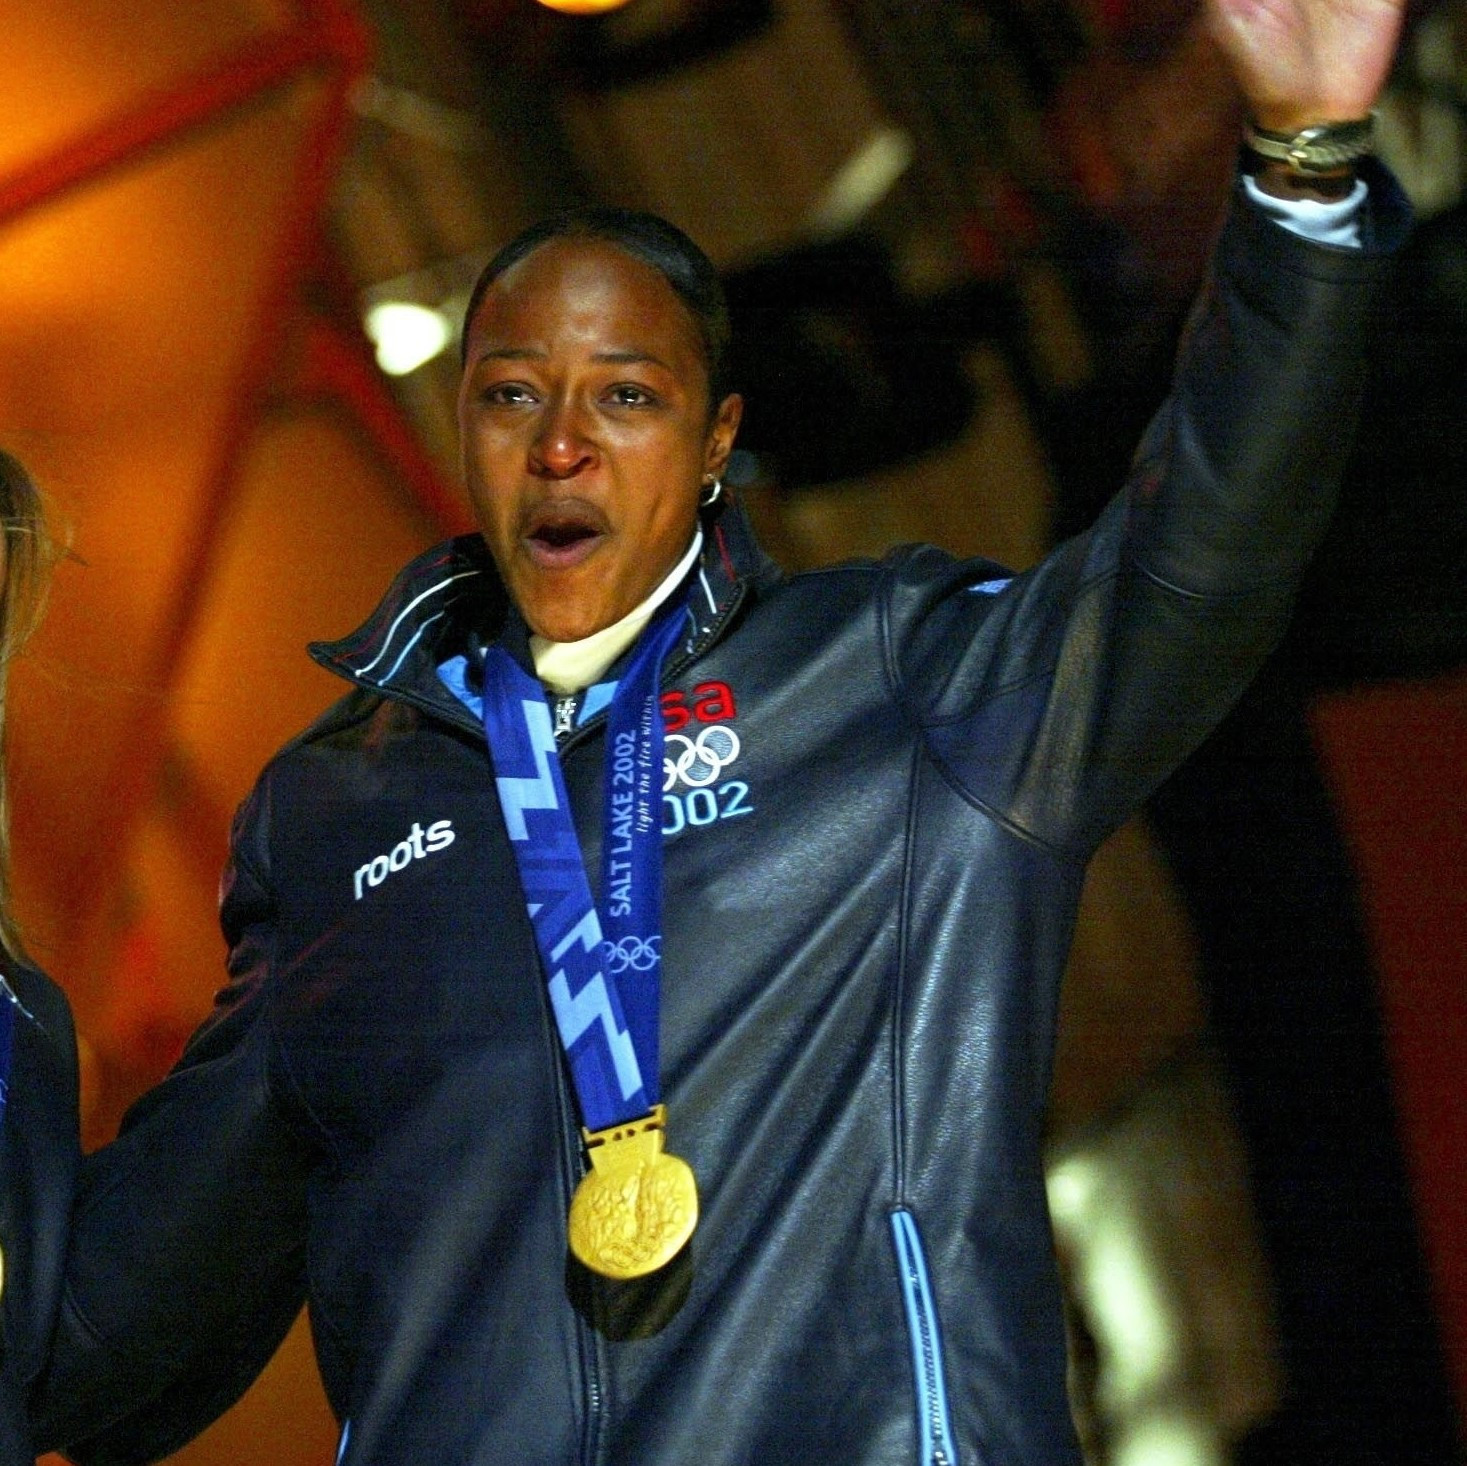 Olympic bobsleigh champion Flowers named Birmingham 2022 World Games honorary co-chair